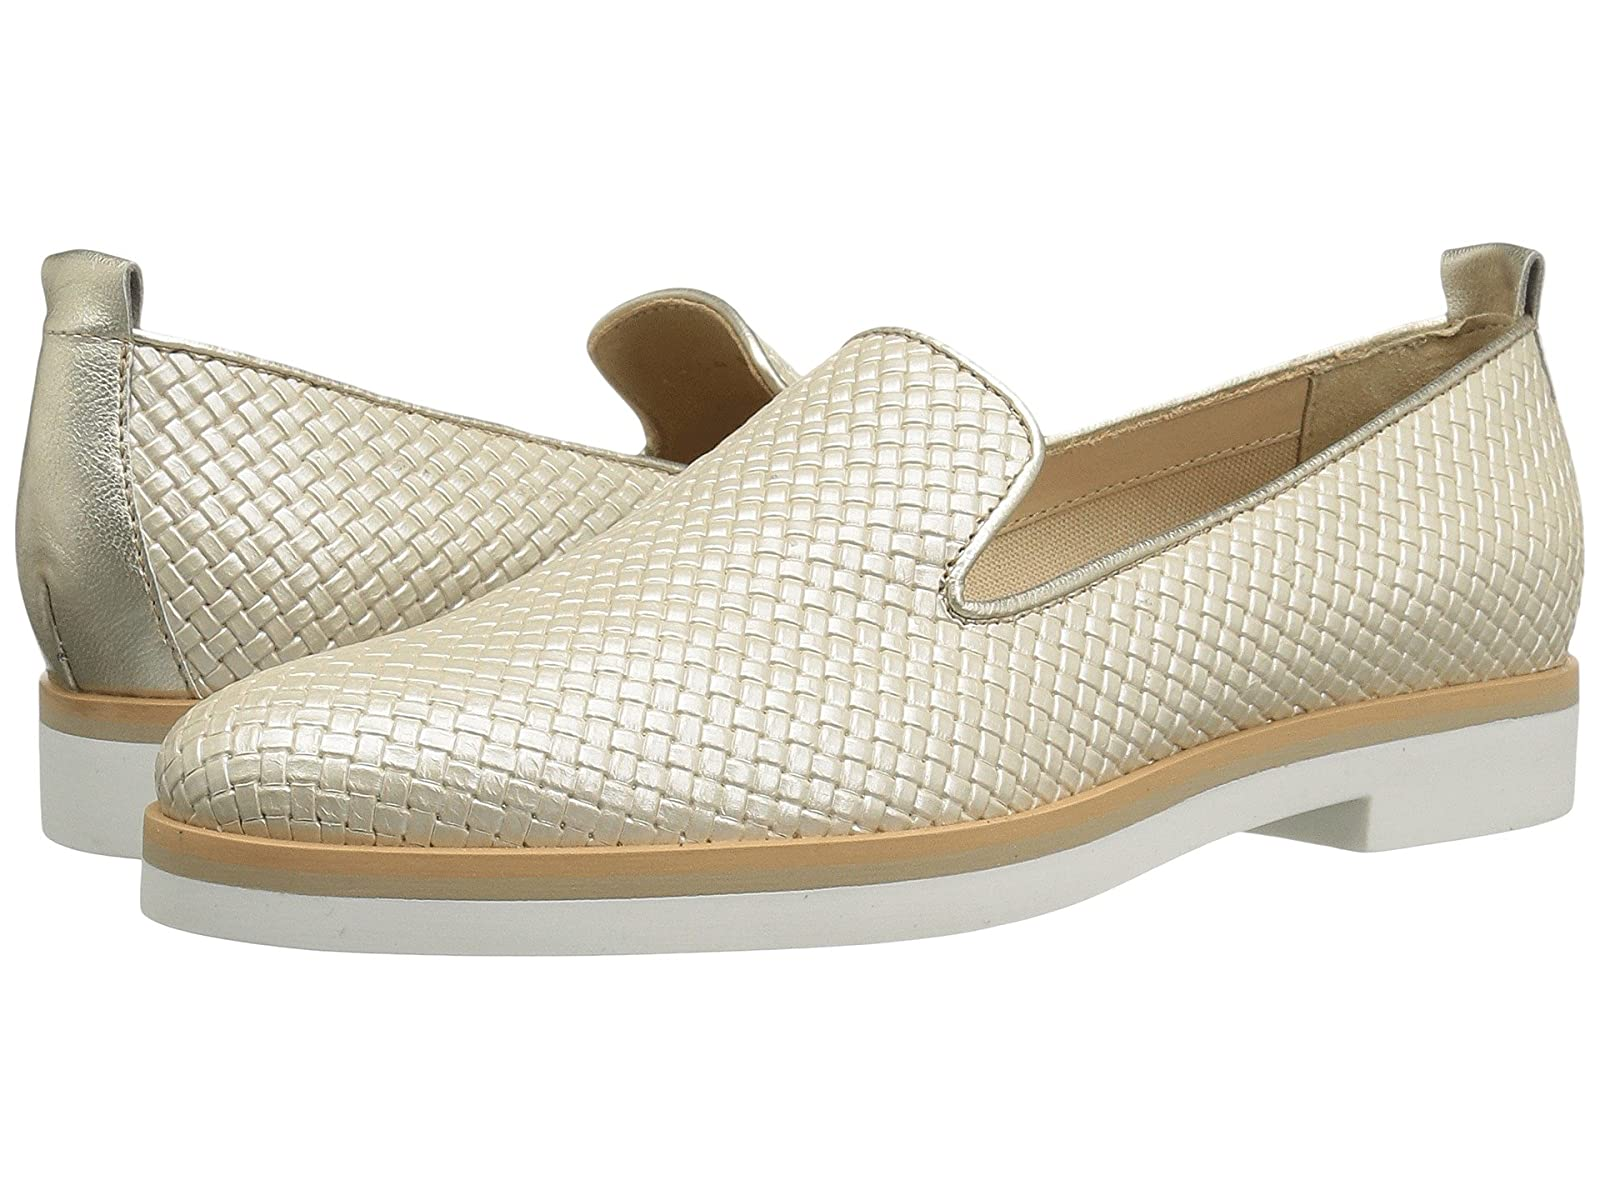 Geox W JANALEE 8Cheap and distinctive eye-catching shoes